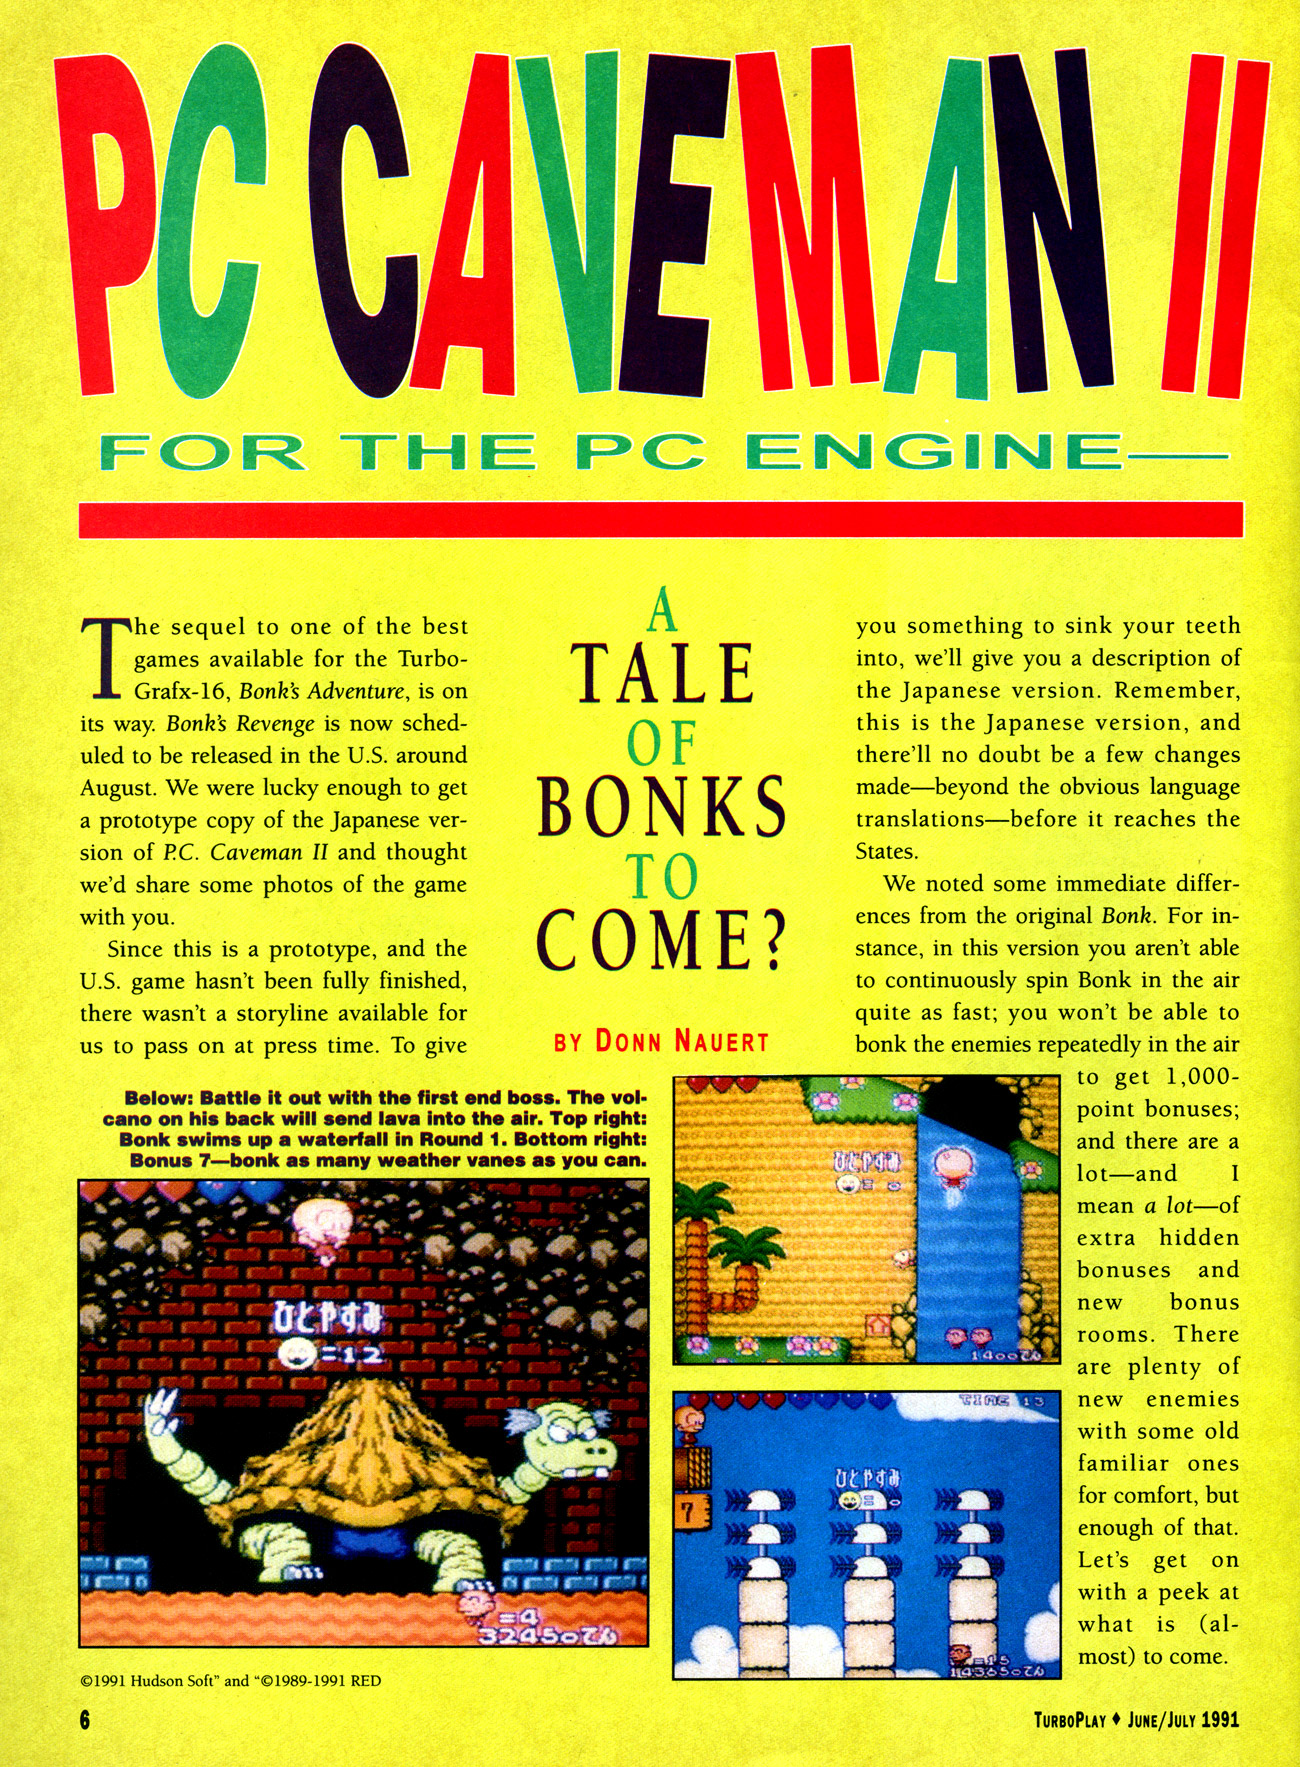 PC CAVEMAN II FOR PC ENGINE - A Tale of Bonks to Come